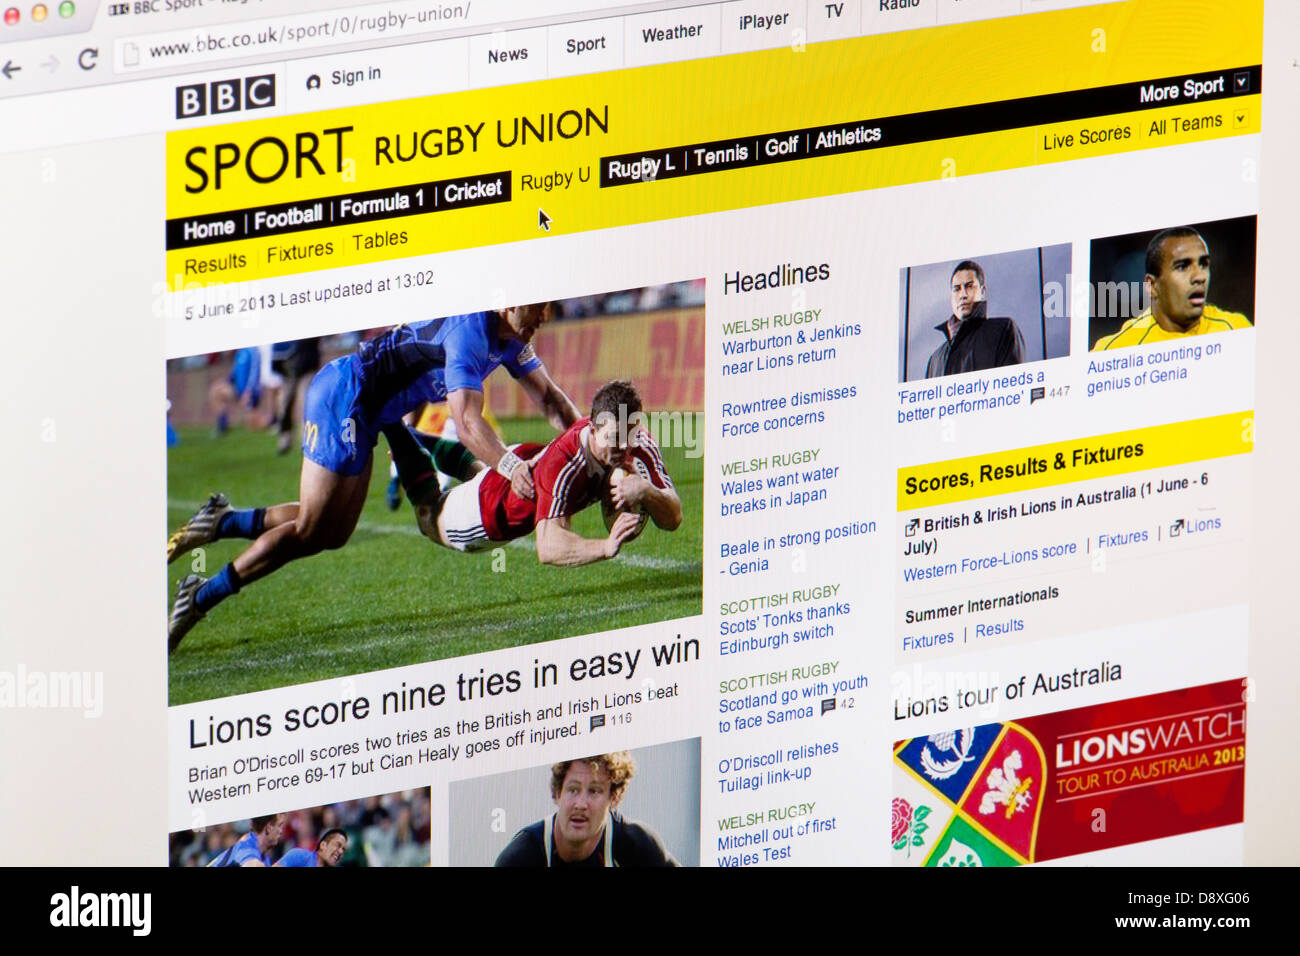 BBC Sport Rugby Union home page Website or web page on a laptop screen or computer monitor - Stock Image